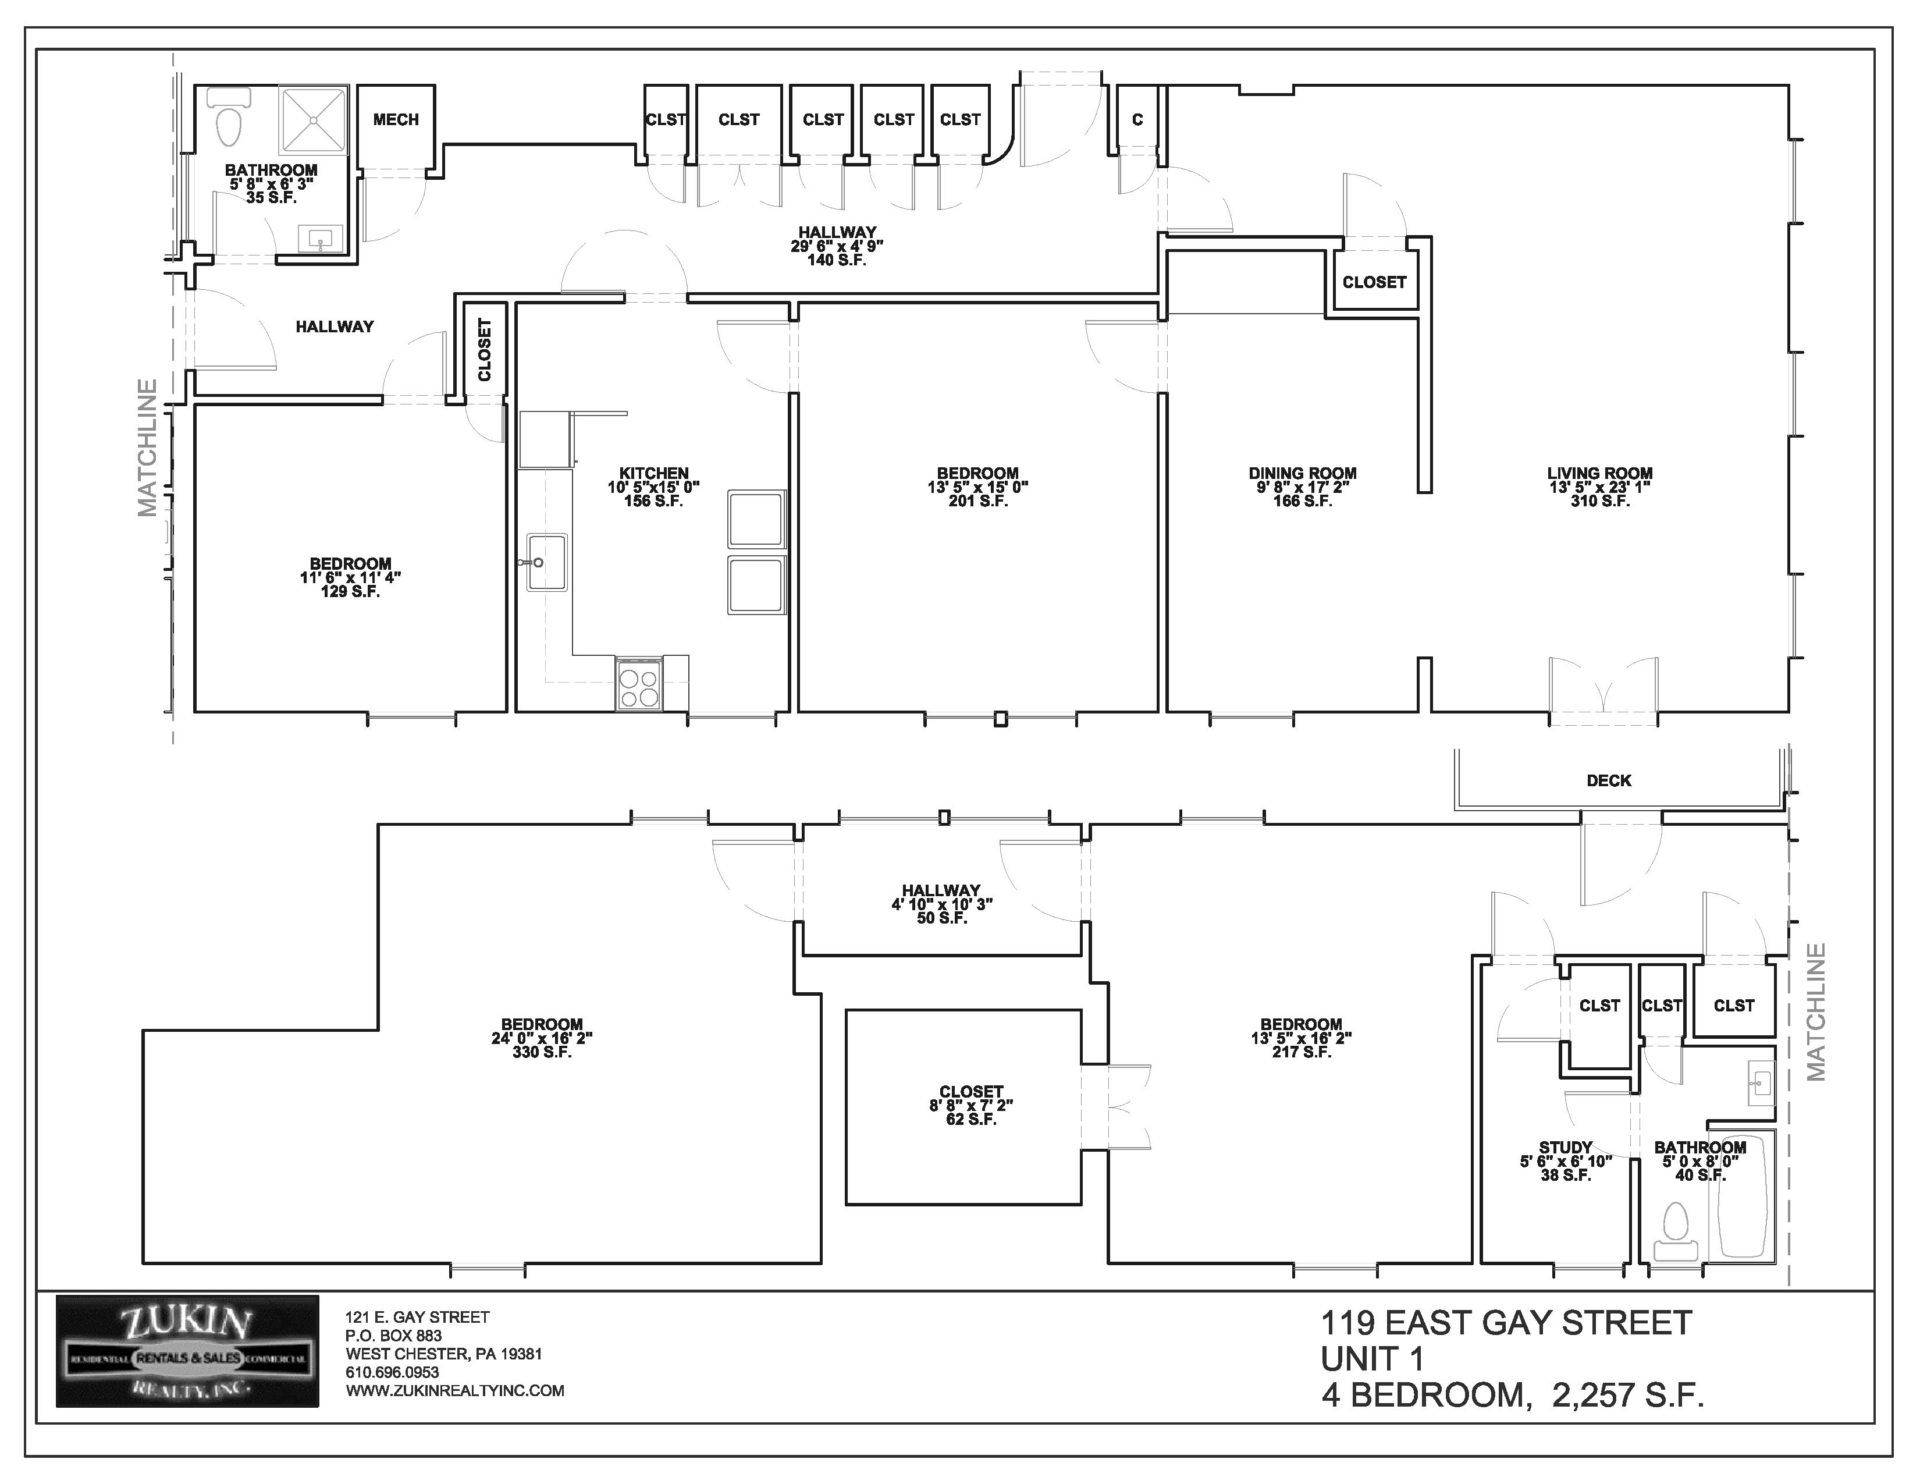 119 E. Gay St. Apt. 1 (Call for Pricing)